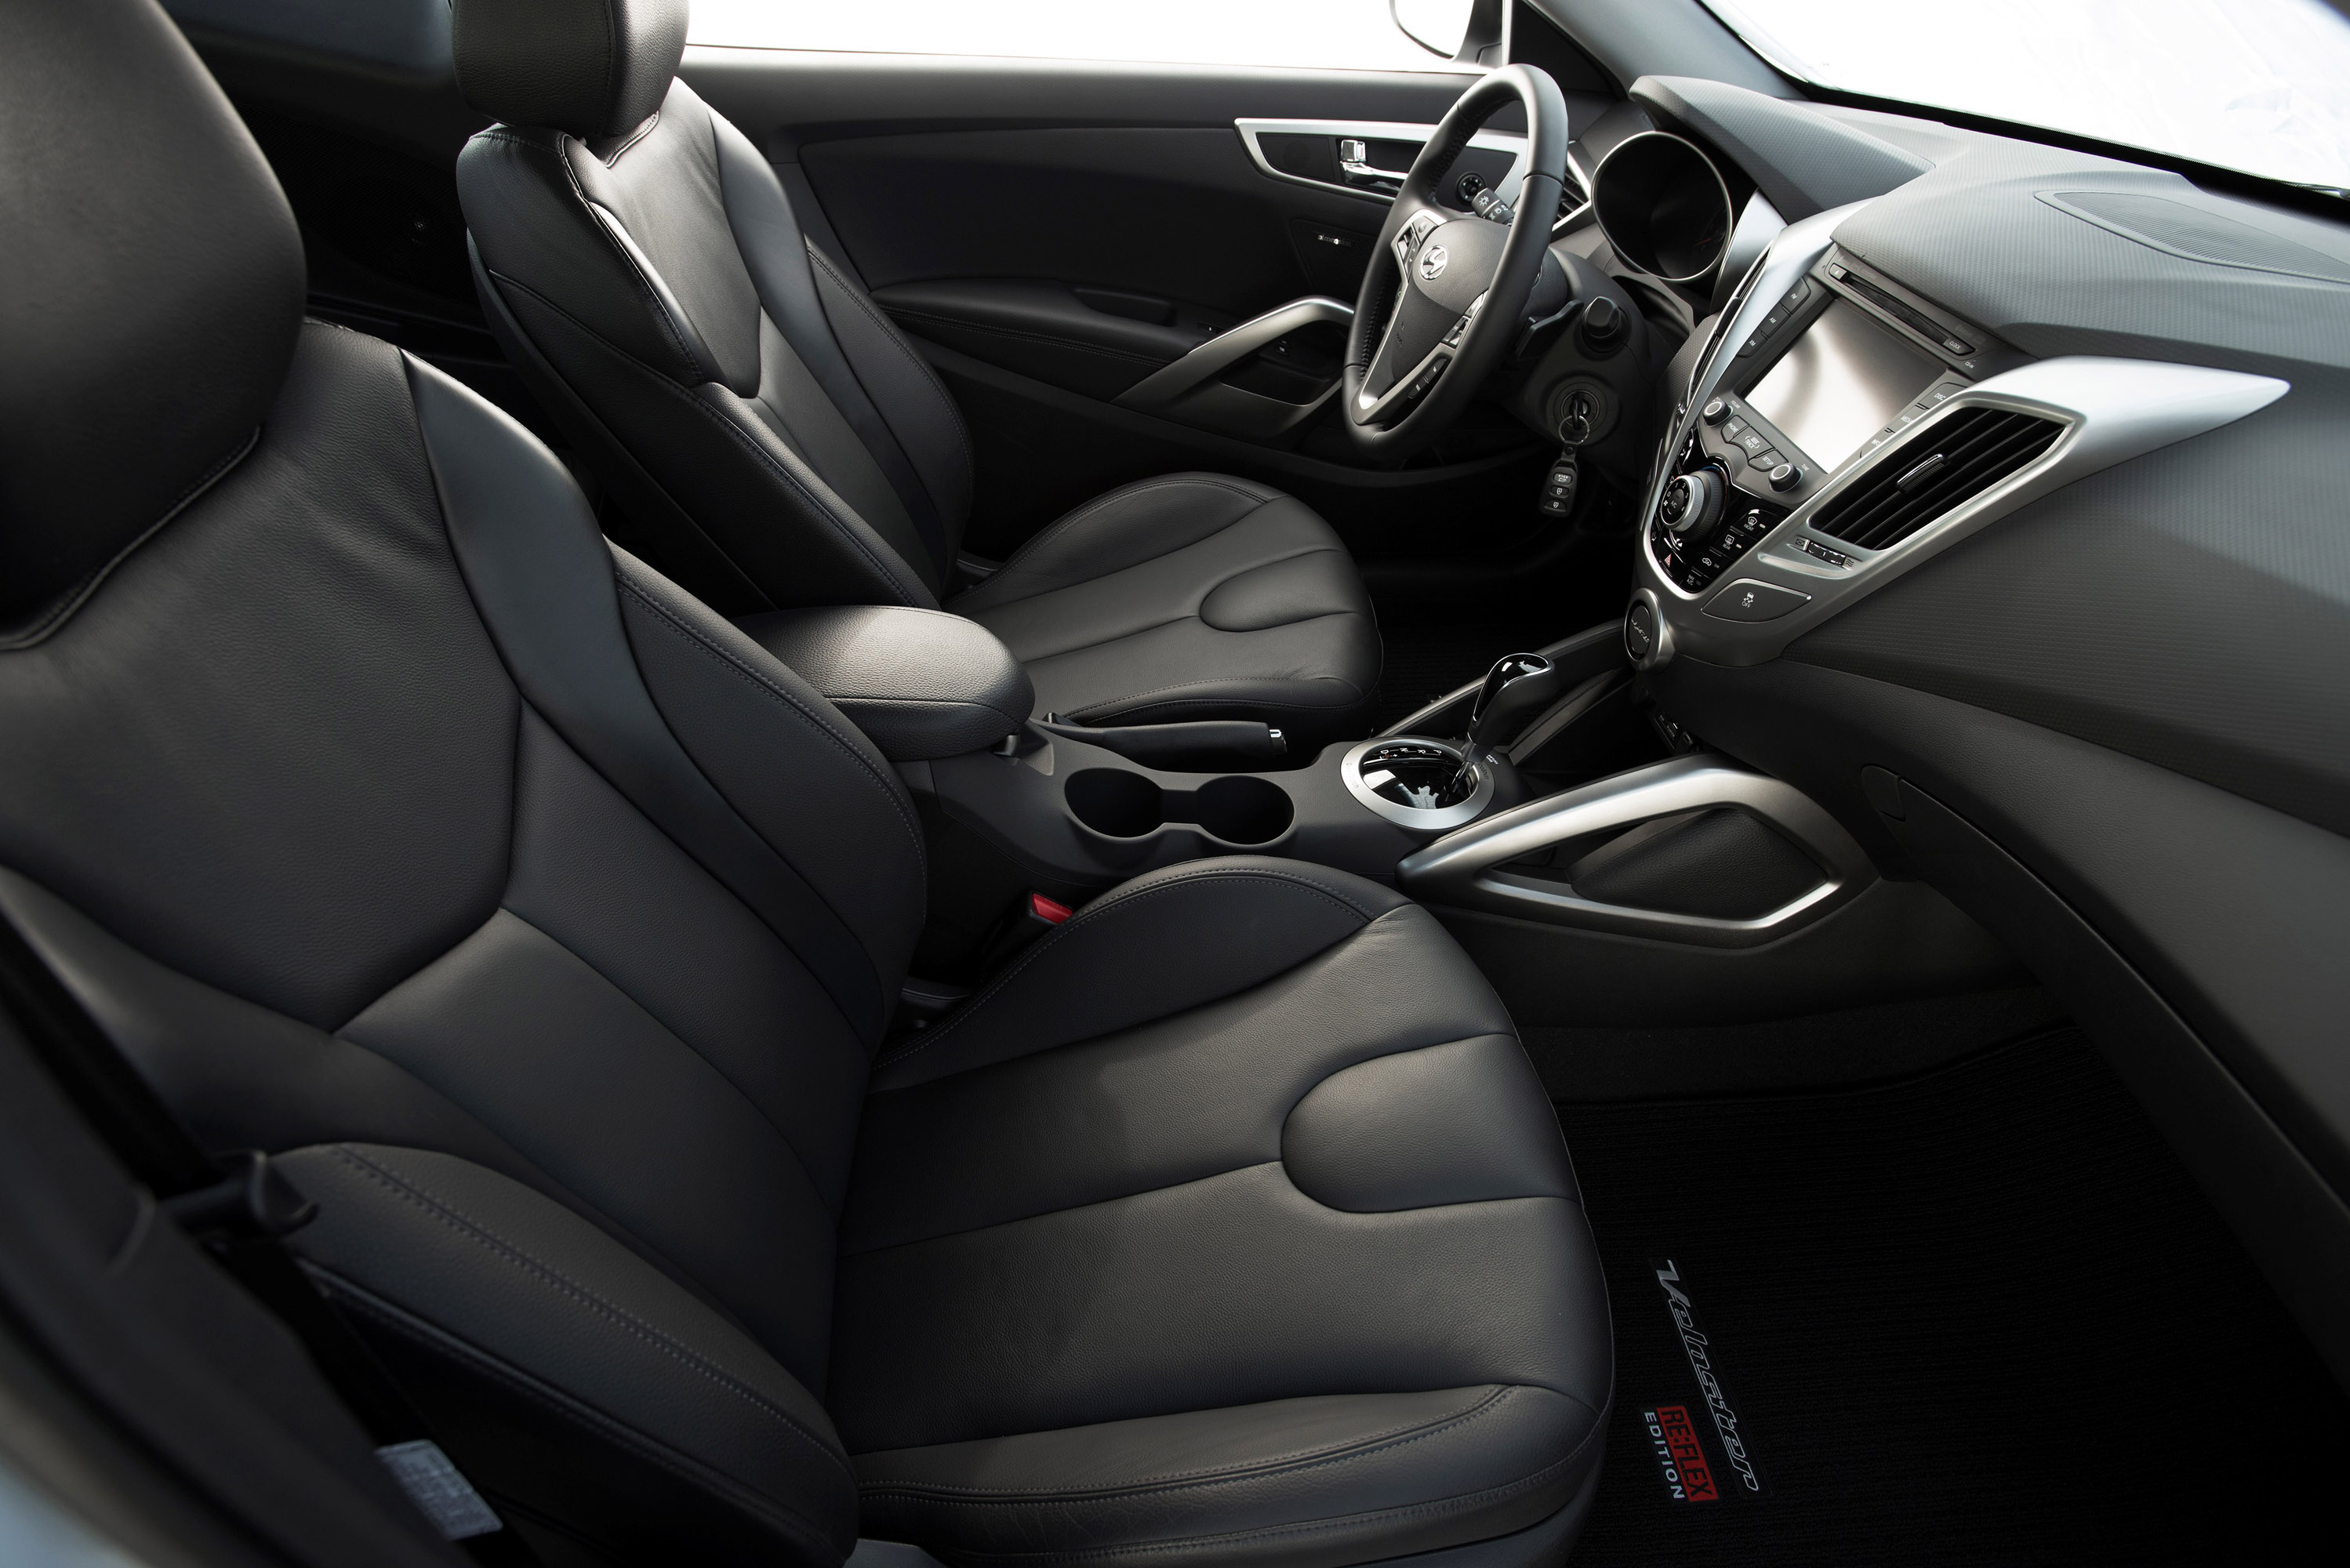 2014 hyundai veloster re flex shown at chicago auto show. Black Bedroom Furniture Sets. Home Design Ideas